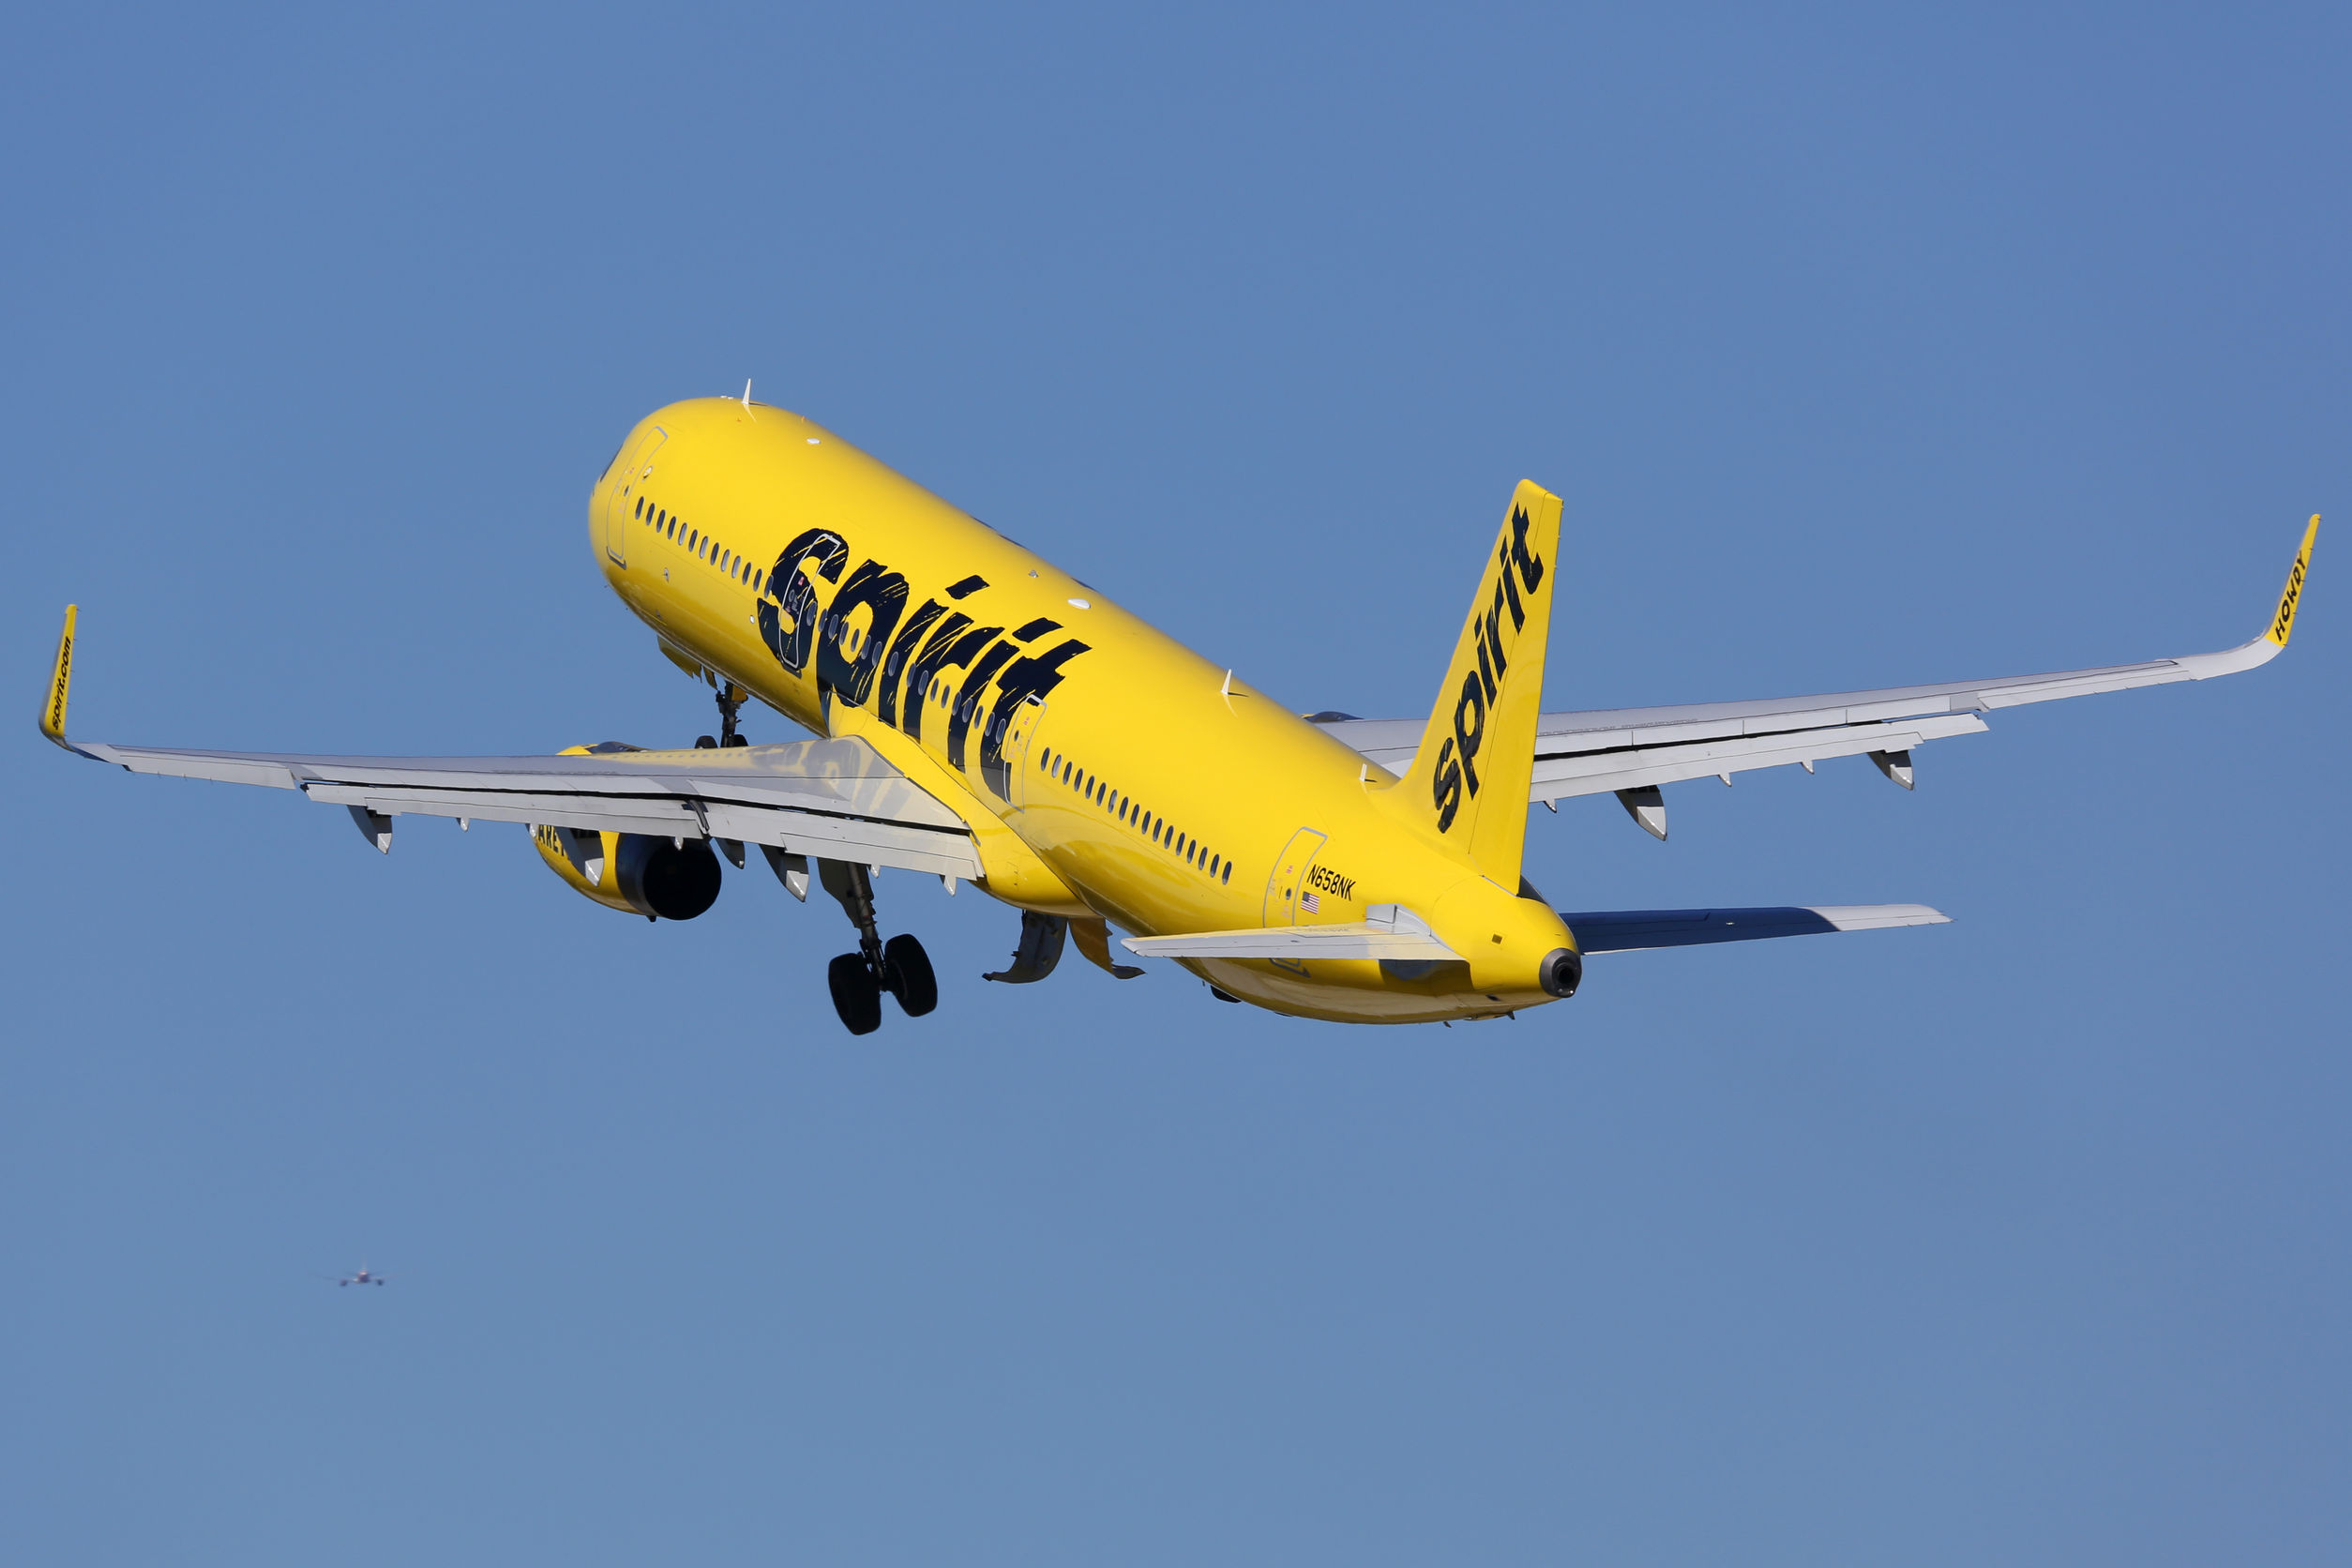 Cheap Spirit Airlines Flights. Spirit Airlines on-time rate of 81% places them in the top 25% in the world, and is also one of the best among medium-size carriers. Spirit Airlines flights are delayed 35% of the time, which is a bit lower than other mid-size carriers. When there is a .